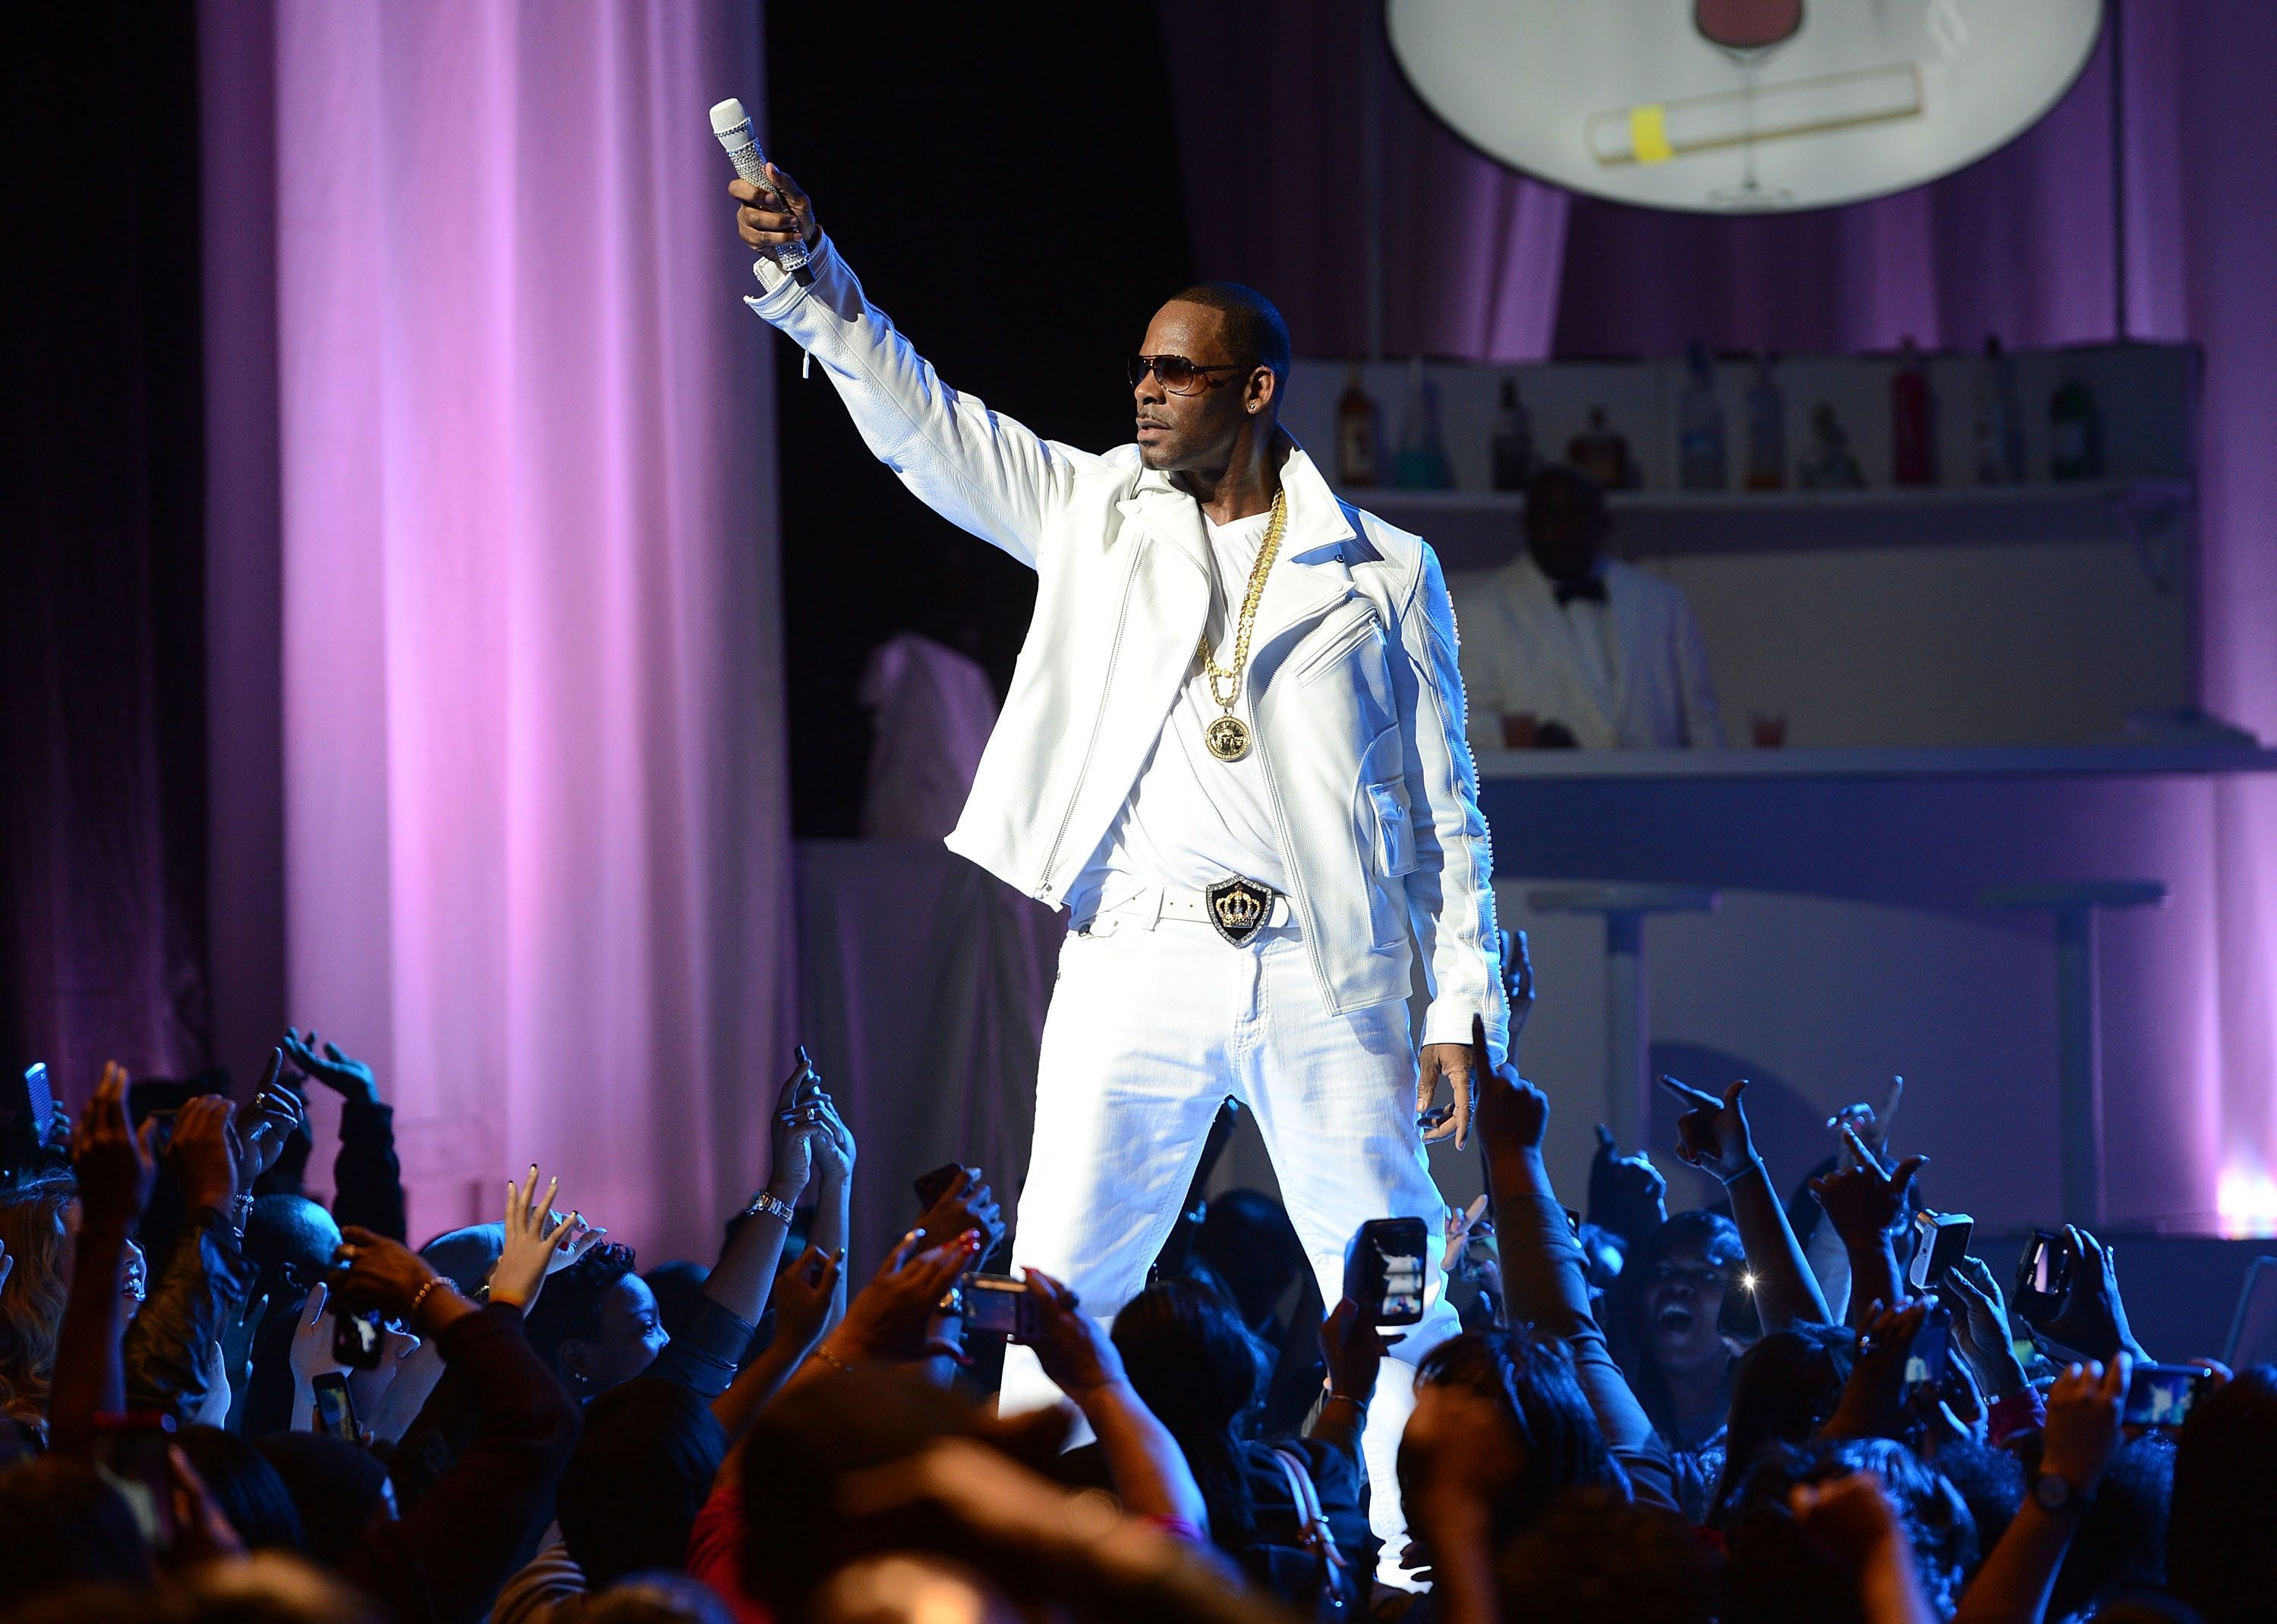 NEW YORK, NY - NOVEMBER 21:  R. Kelly performs at MSG Theater on November 21, 2012 in New York City.  (Photo by Jason Kempin/Getty Images)